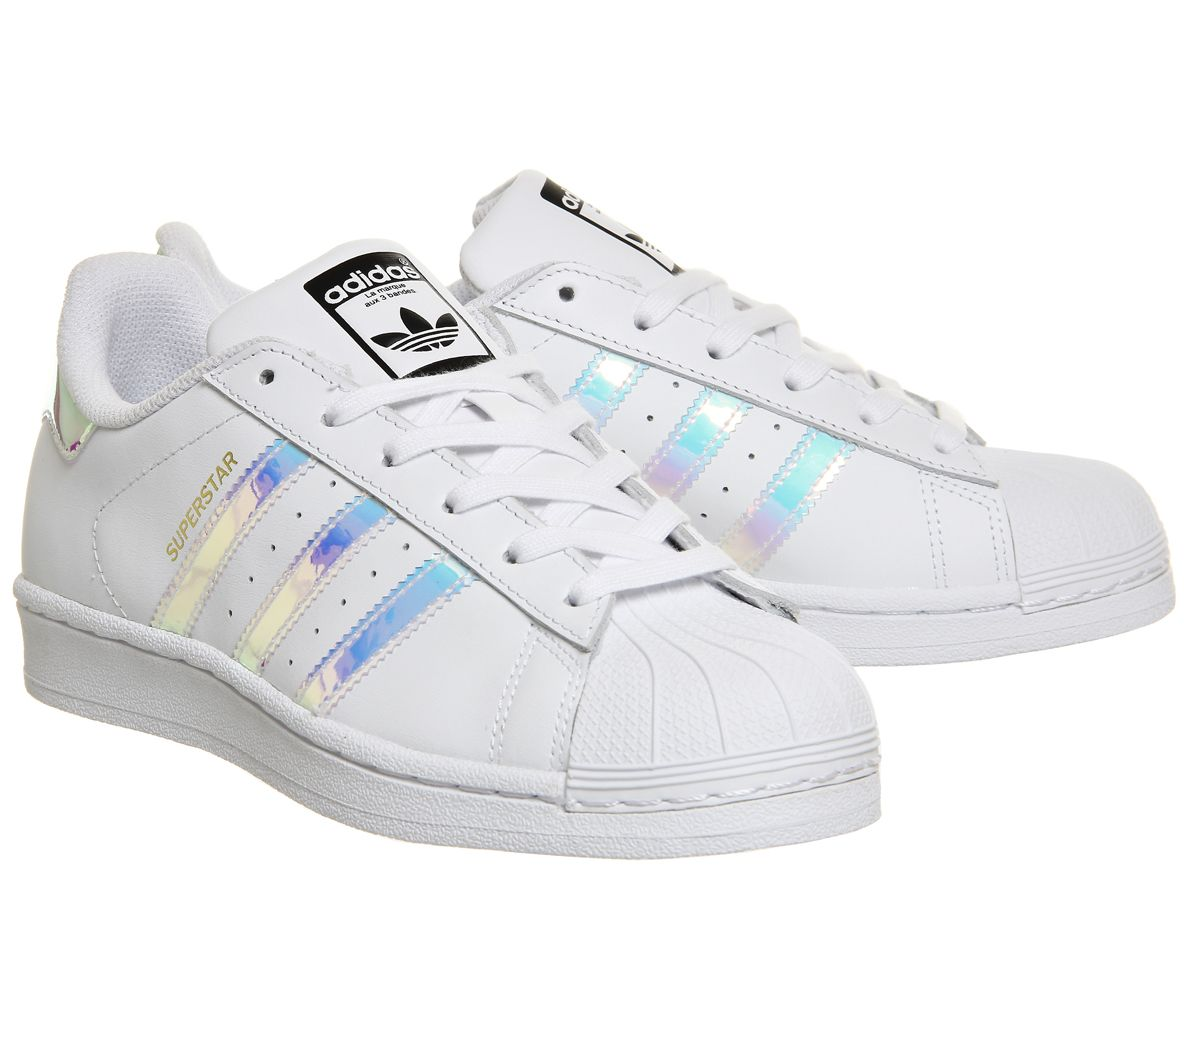 on sale fb793 9141e Donna-Adidas-Superstar-Bianco-Argento-Metallizzato miniatura 8